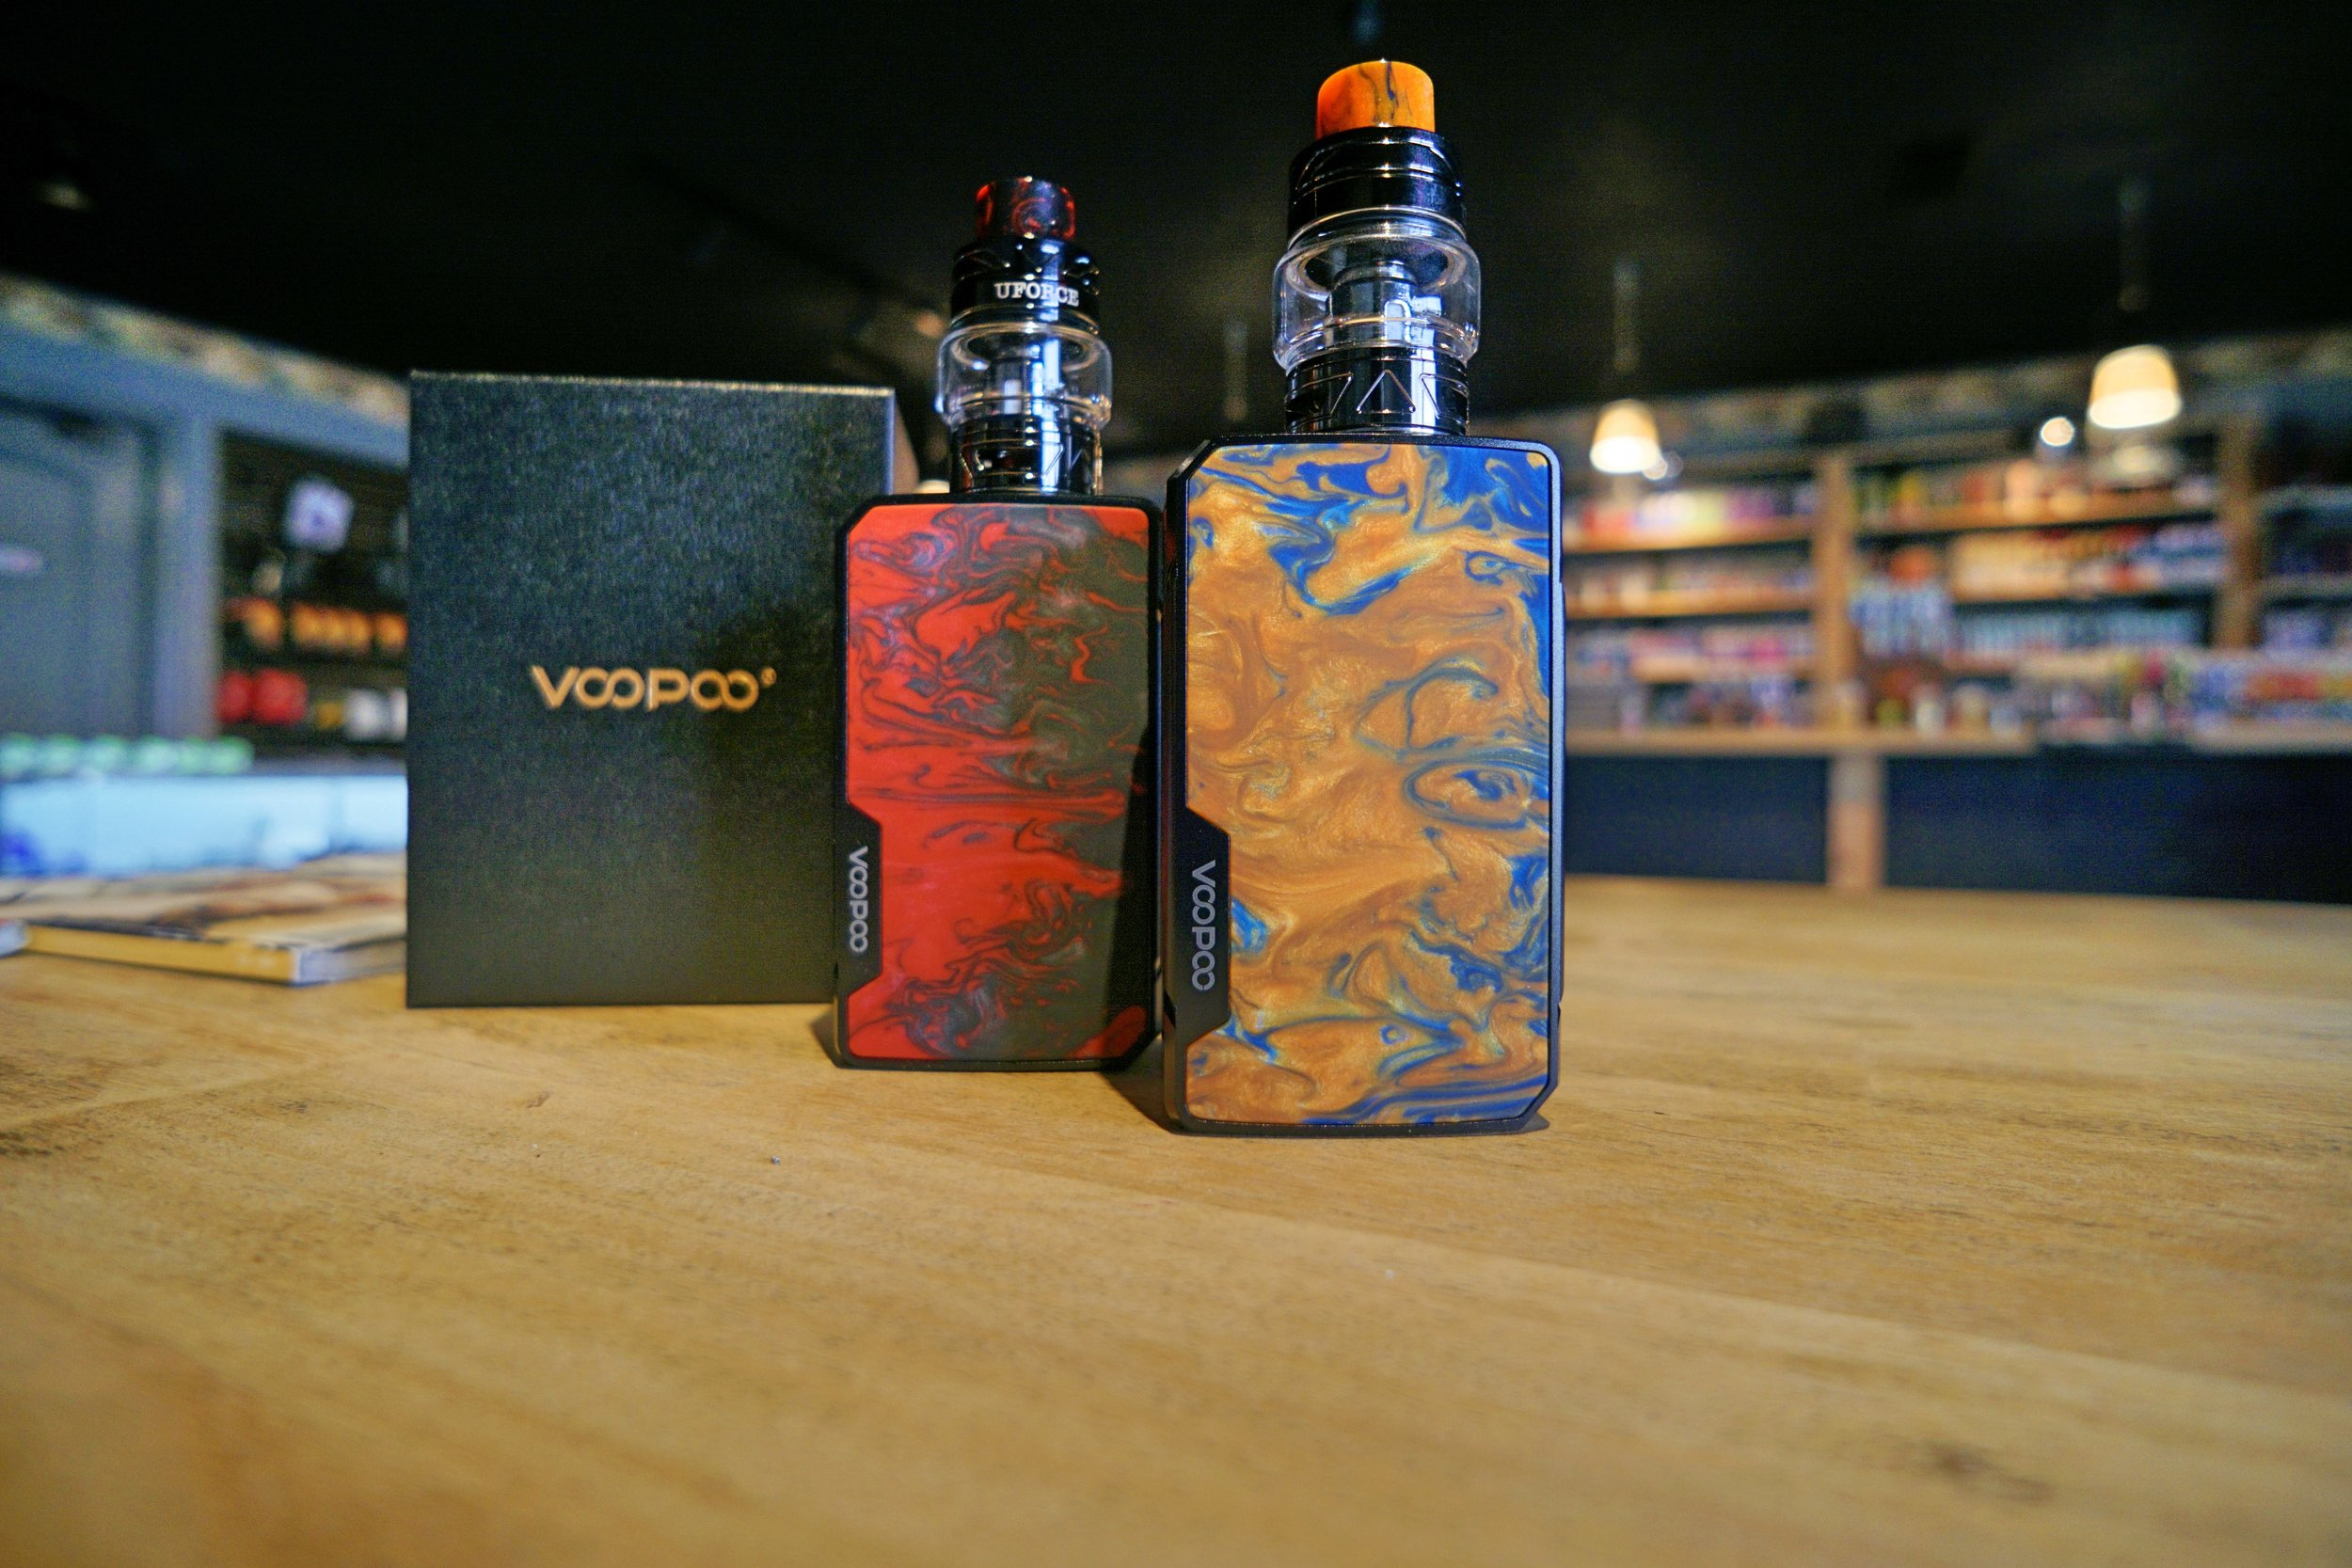 "Voopoo Drag 2 Kit   The Voopoo Drag 2 Kit features the Drag 2 TC Box Mod using the Gene.FIT chip, and powered by x2 18650 battereis (not included). The device packs 5-177w of power, up to 7.5v output voltage and a 0.05-5.0ohm resistance range. The custom Gene.FIT chipset features ""FIT Mode,"" which auto-detects sub-ohm tanks and accordingly adjusts outputs between three presets: battery-saving, max flavor and cloud chaser mode. The temperature control suite supports nickel, titanium and stainless steel, with a temperature range of 200-600°F. The Drag 2 is a smart box mod to boot, with a full safety suite including short-circuit, reverse polarity and over current protections.  The bundled U-Force T2 Tank is a 24.6mm diameter sub-ohm tank with 3.5ml standard capacity (8ml max), a 14mm wide bore drip tip and triple bottom adjustable airflow. You get two U-Force coils with the tank: a 0.4ohm U2 standard coil rated for 55-65w, and a 0.2ohm N3 triple mesh coil rated for 75-85w. Drag 2 177w TC Kit is an excellent choice for a power, versatility and plenty of stable vaping presets."